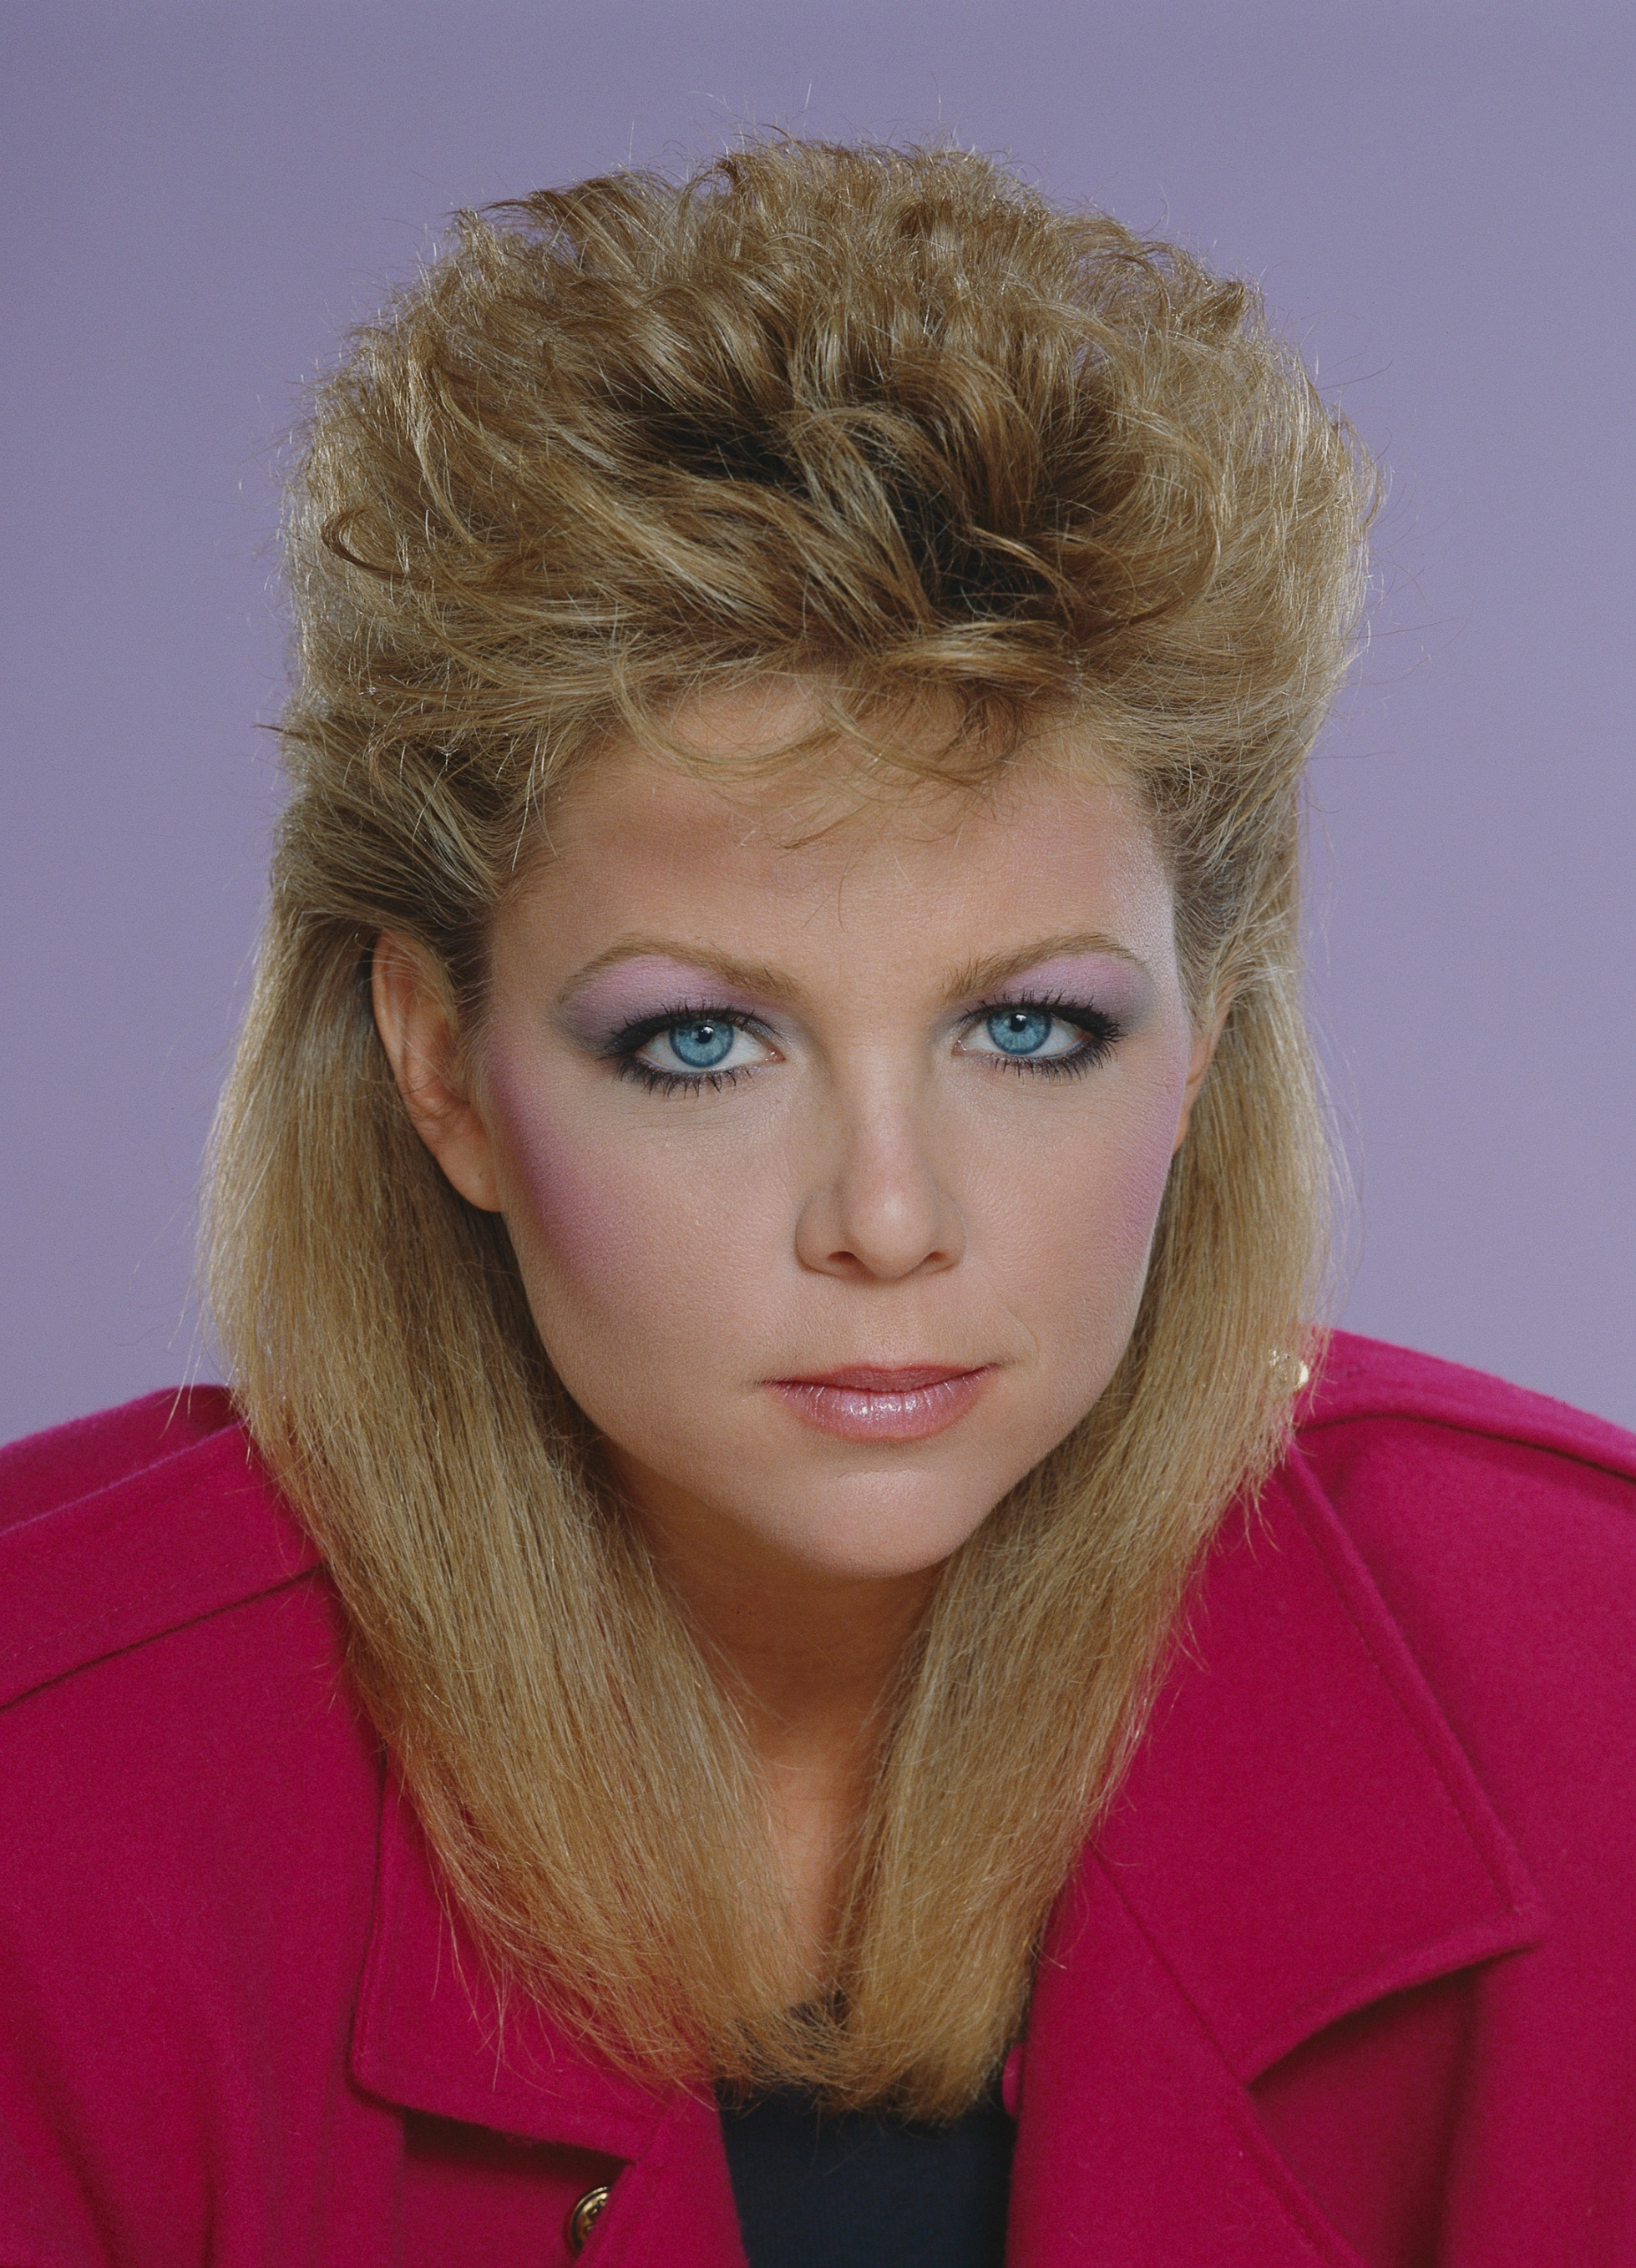 Fantastic Bad 3980S Beauty Trends Embarrassing Eighties Hairstyles And Short Hairstyles Gunalazisus